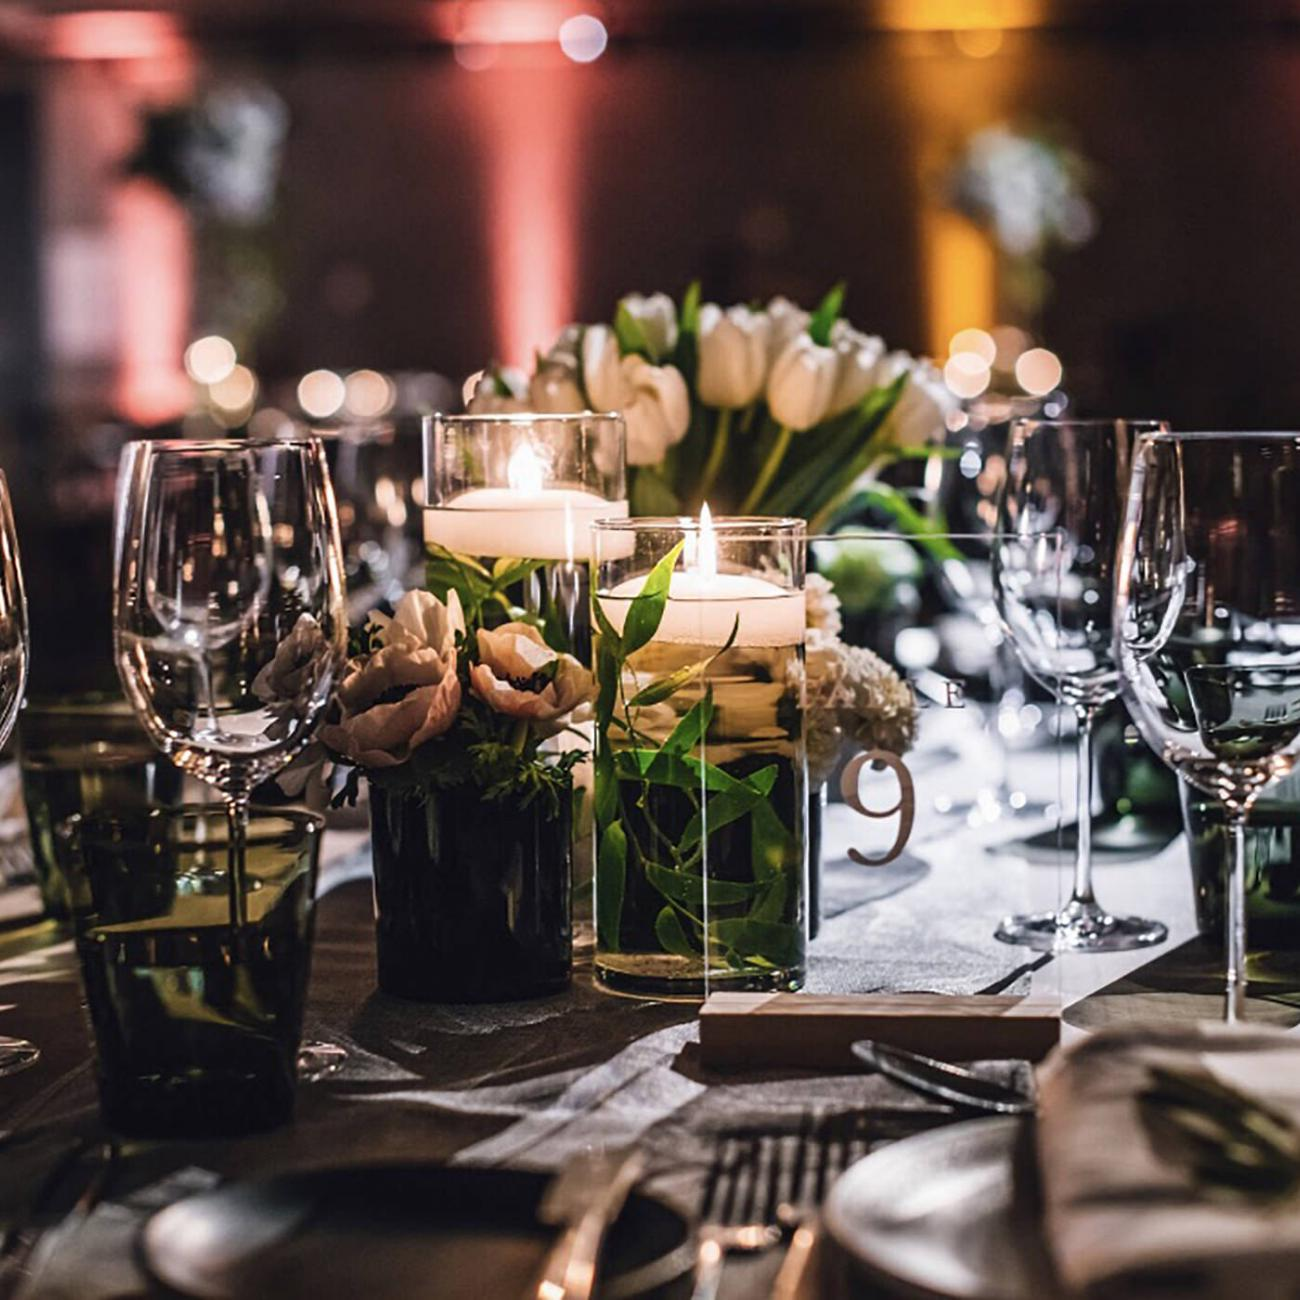 A table set with glassware, flowers and candles